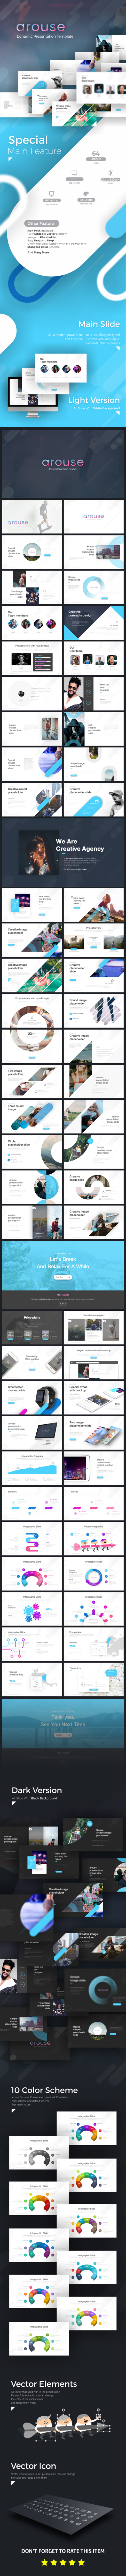 Arouse Dynamic Presentation Template - Business PowerPoint Templates